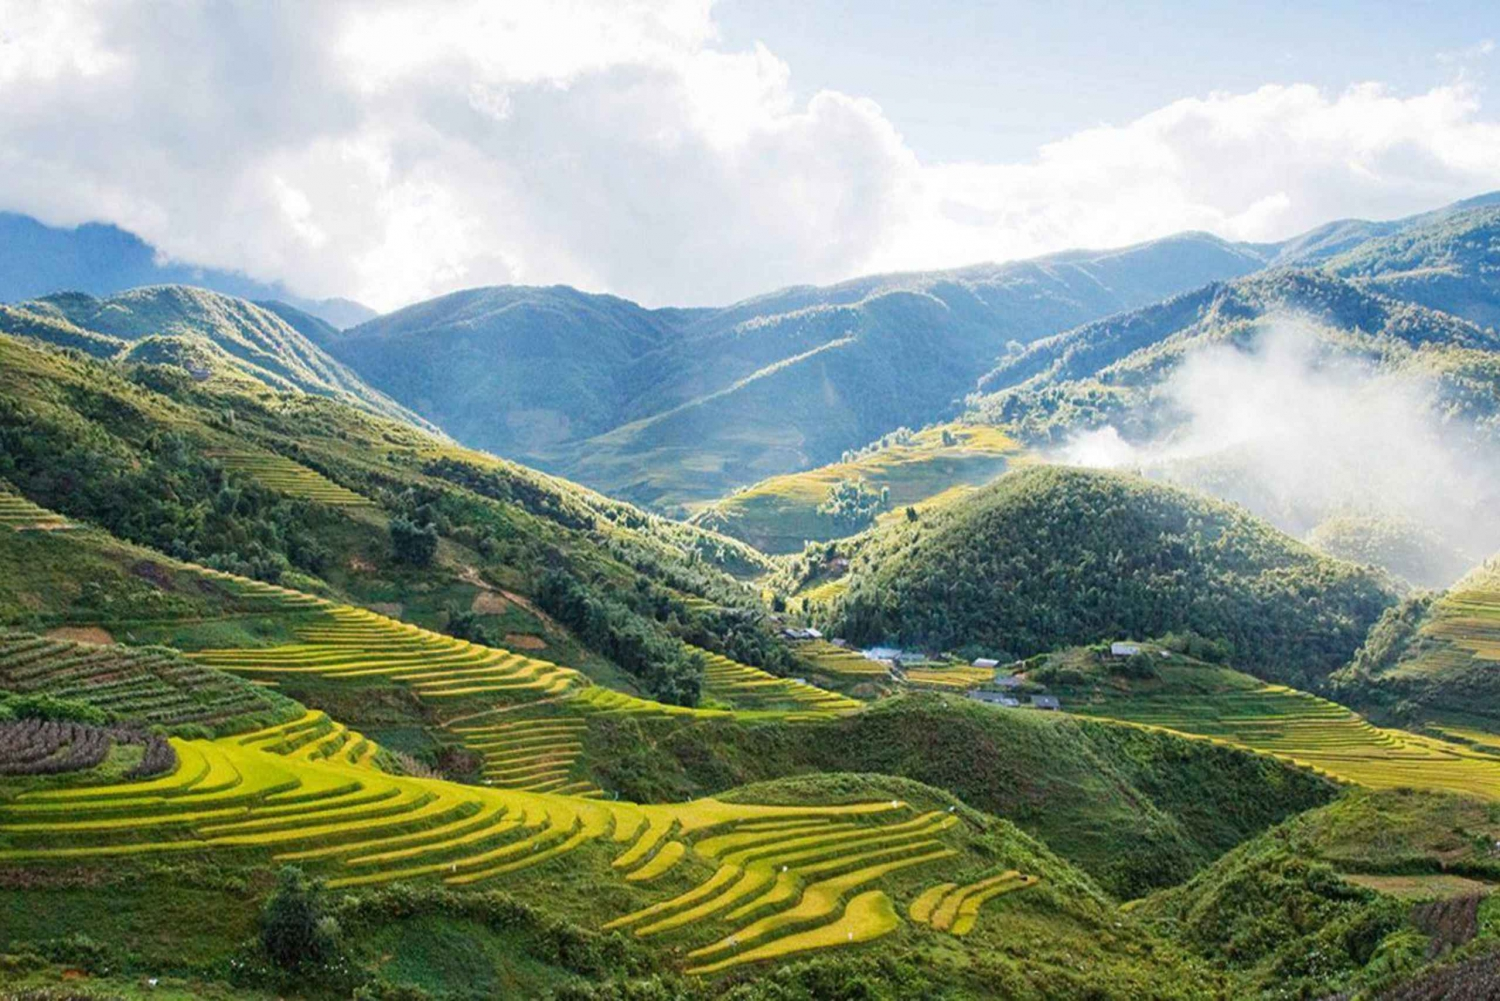 2-Day Overnight Sapa Tour by Bus from Hanoi